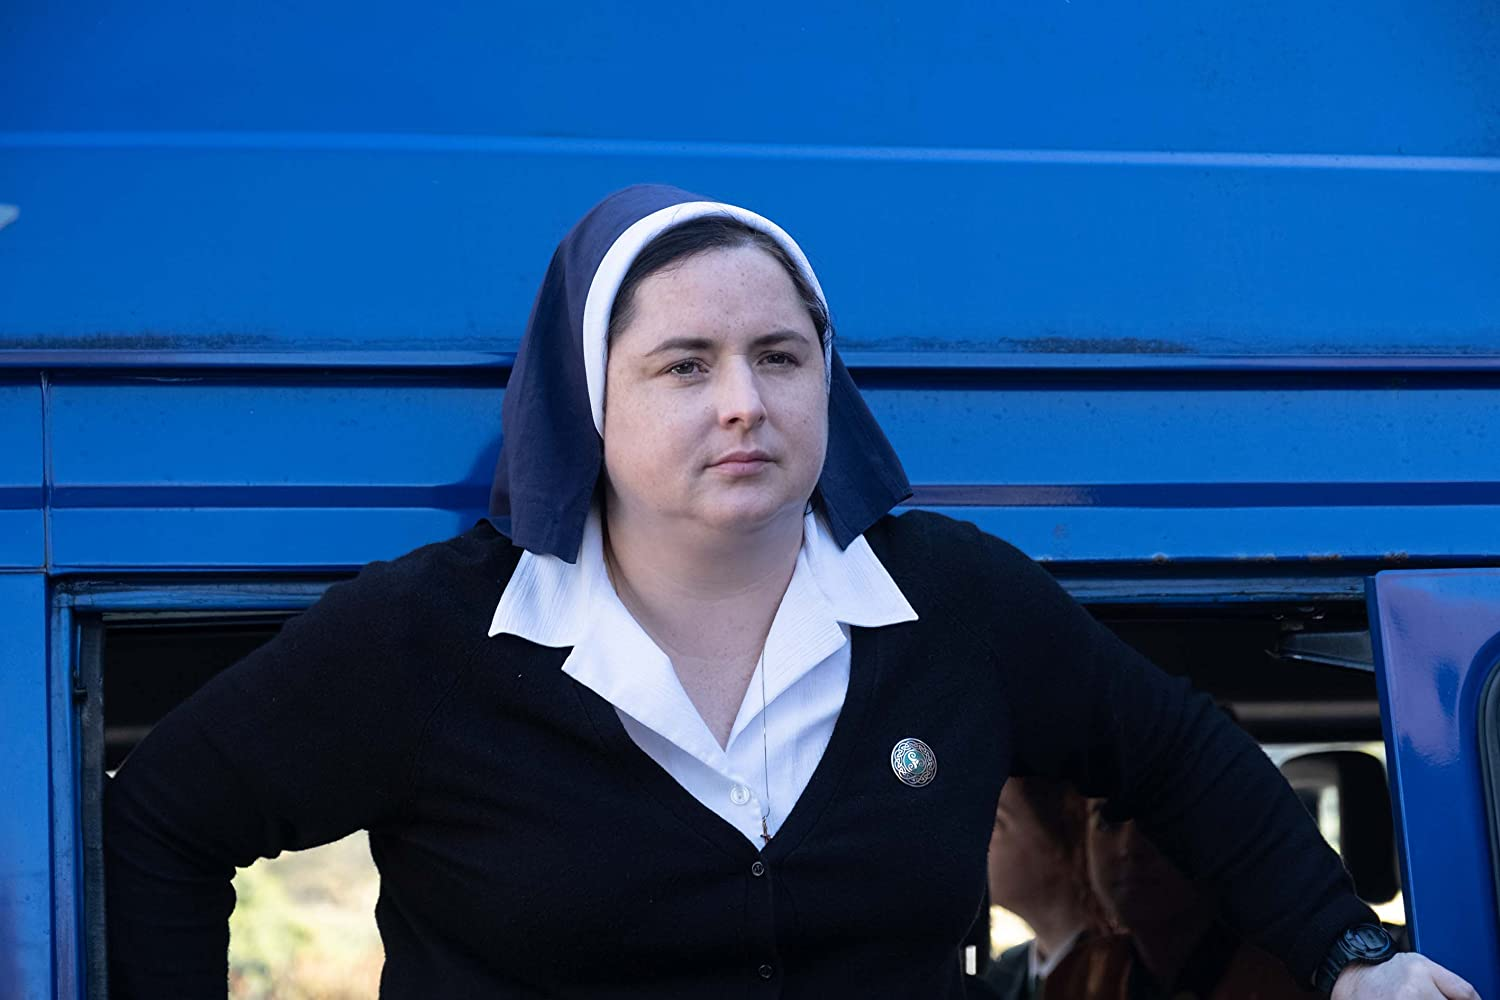 Siobhan McSweeney in Derry Girls (2018)